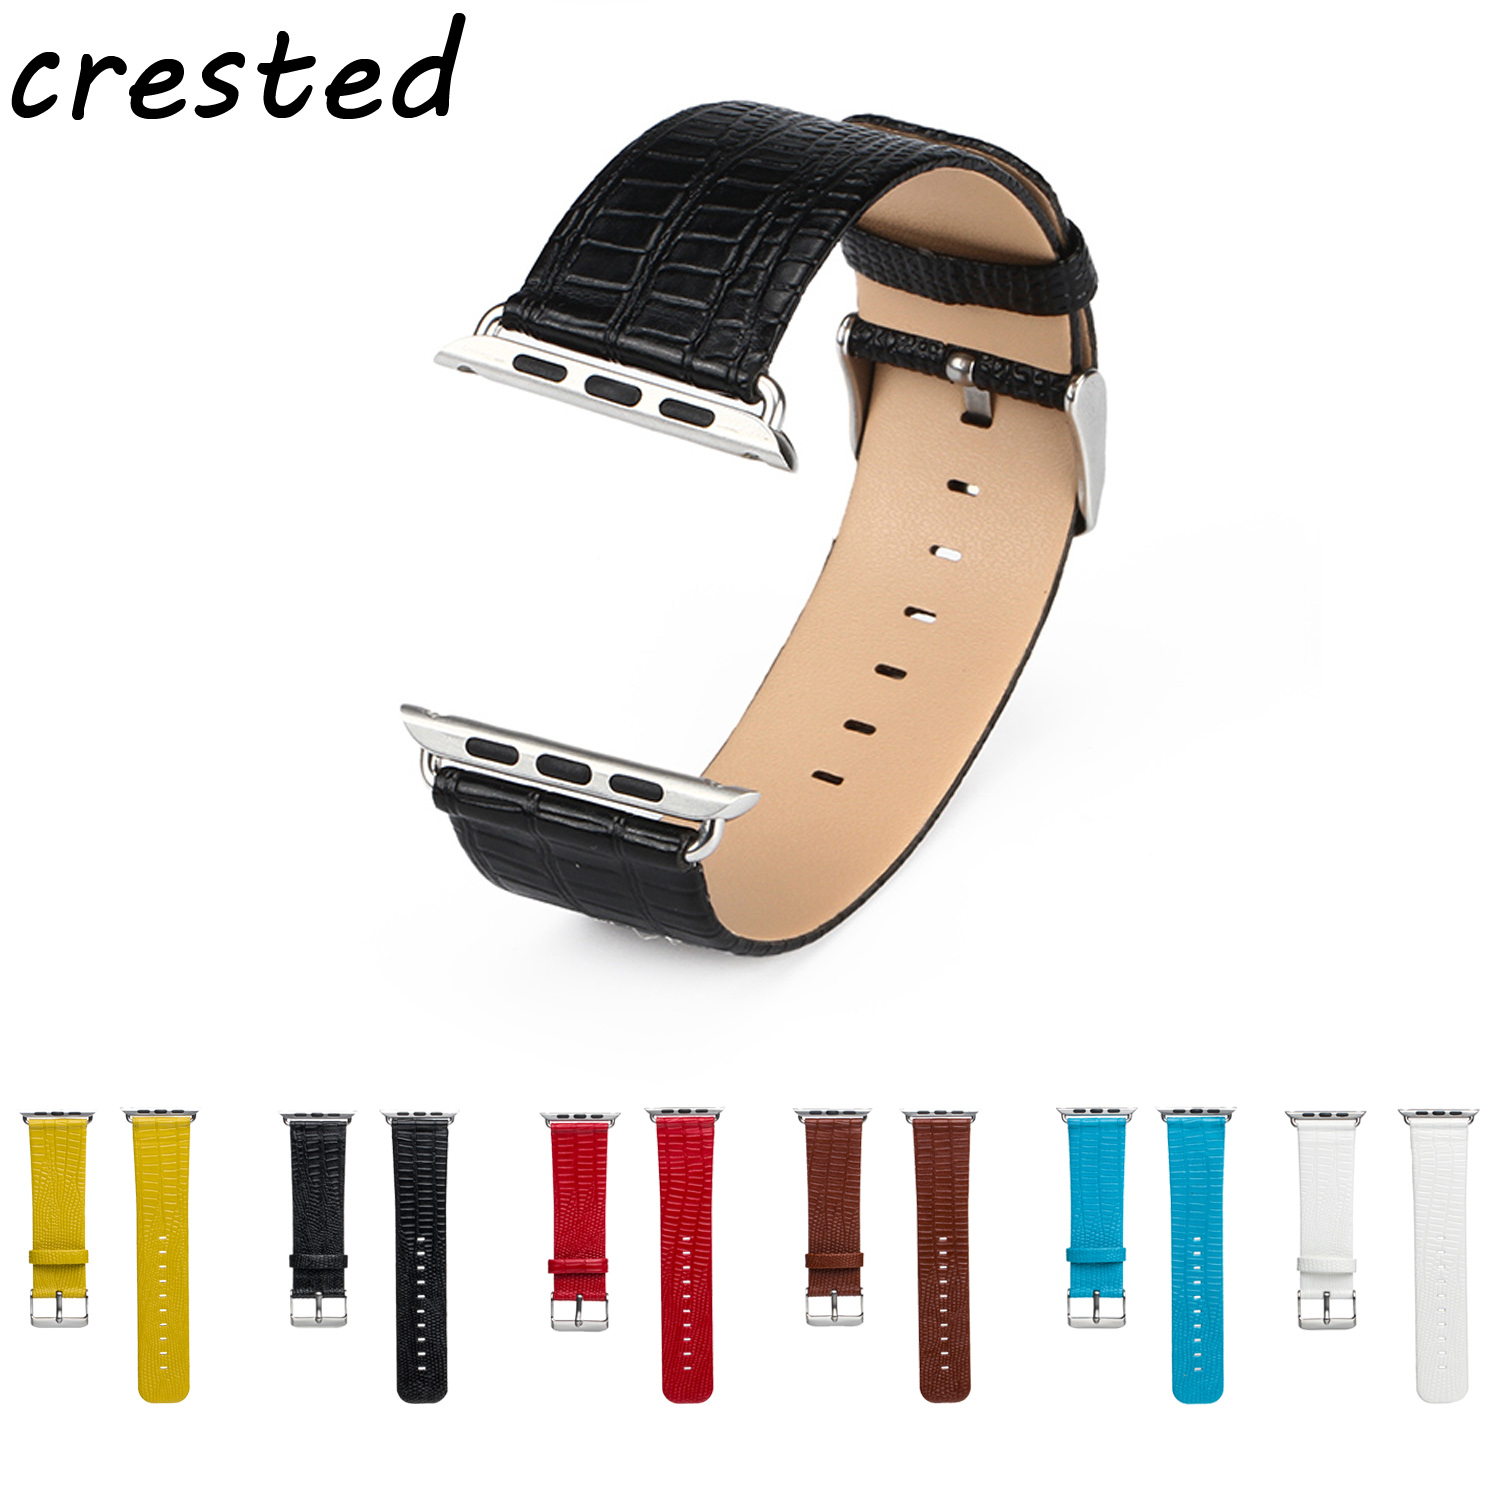 CRESTED PU leather watch strap for apple watch band 42 mm/38 replacement Watch Strap for iwatch 1/2/3 belt Lizard pattern band lizard сандали posh moc 38 sand